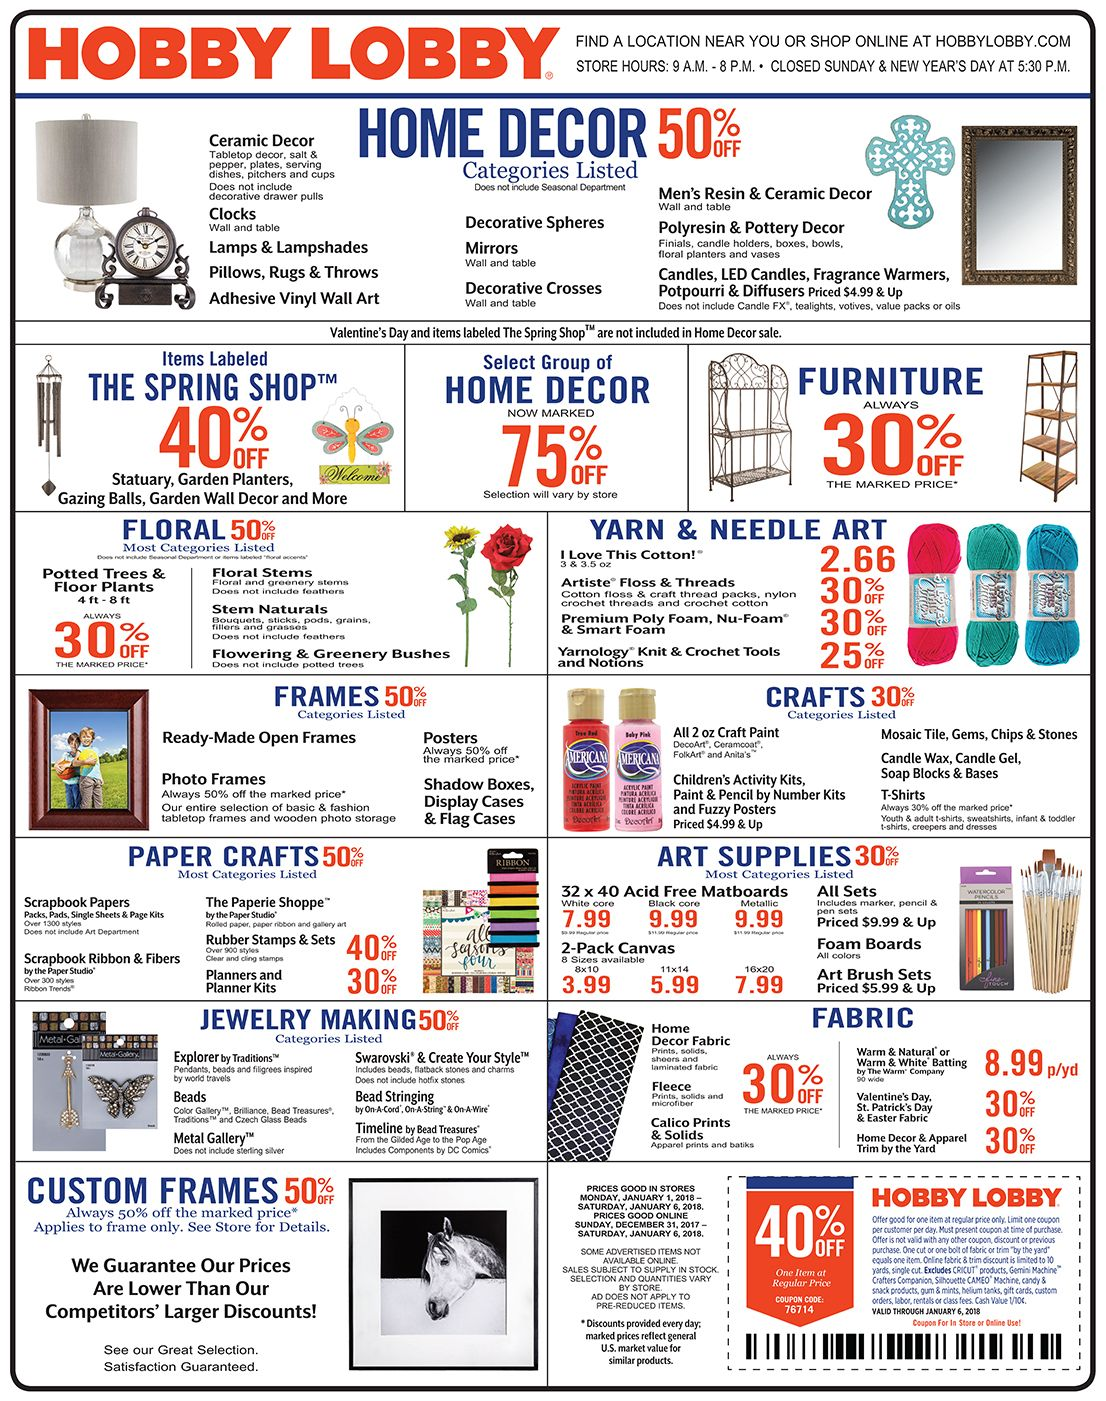 Hobby Lobby Weekly Ad Prices Good Through January 6th